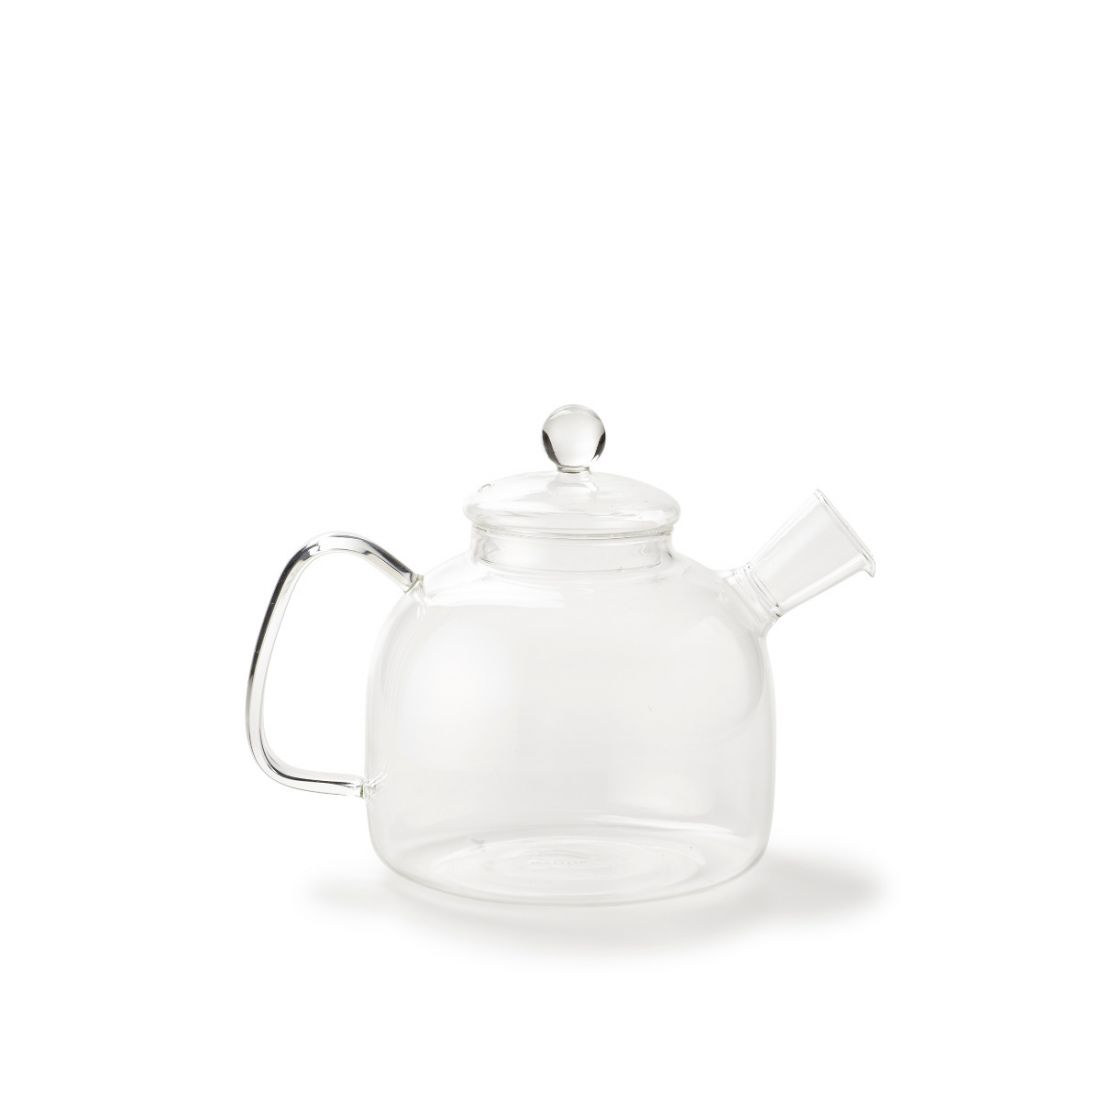 Bollitore Tea-Time 1750 ml Bitossi Home @ Florenzi Casa